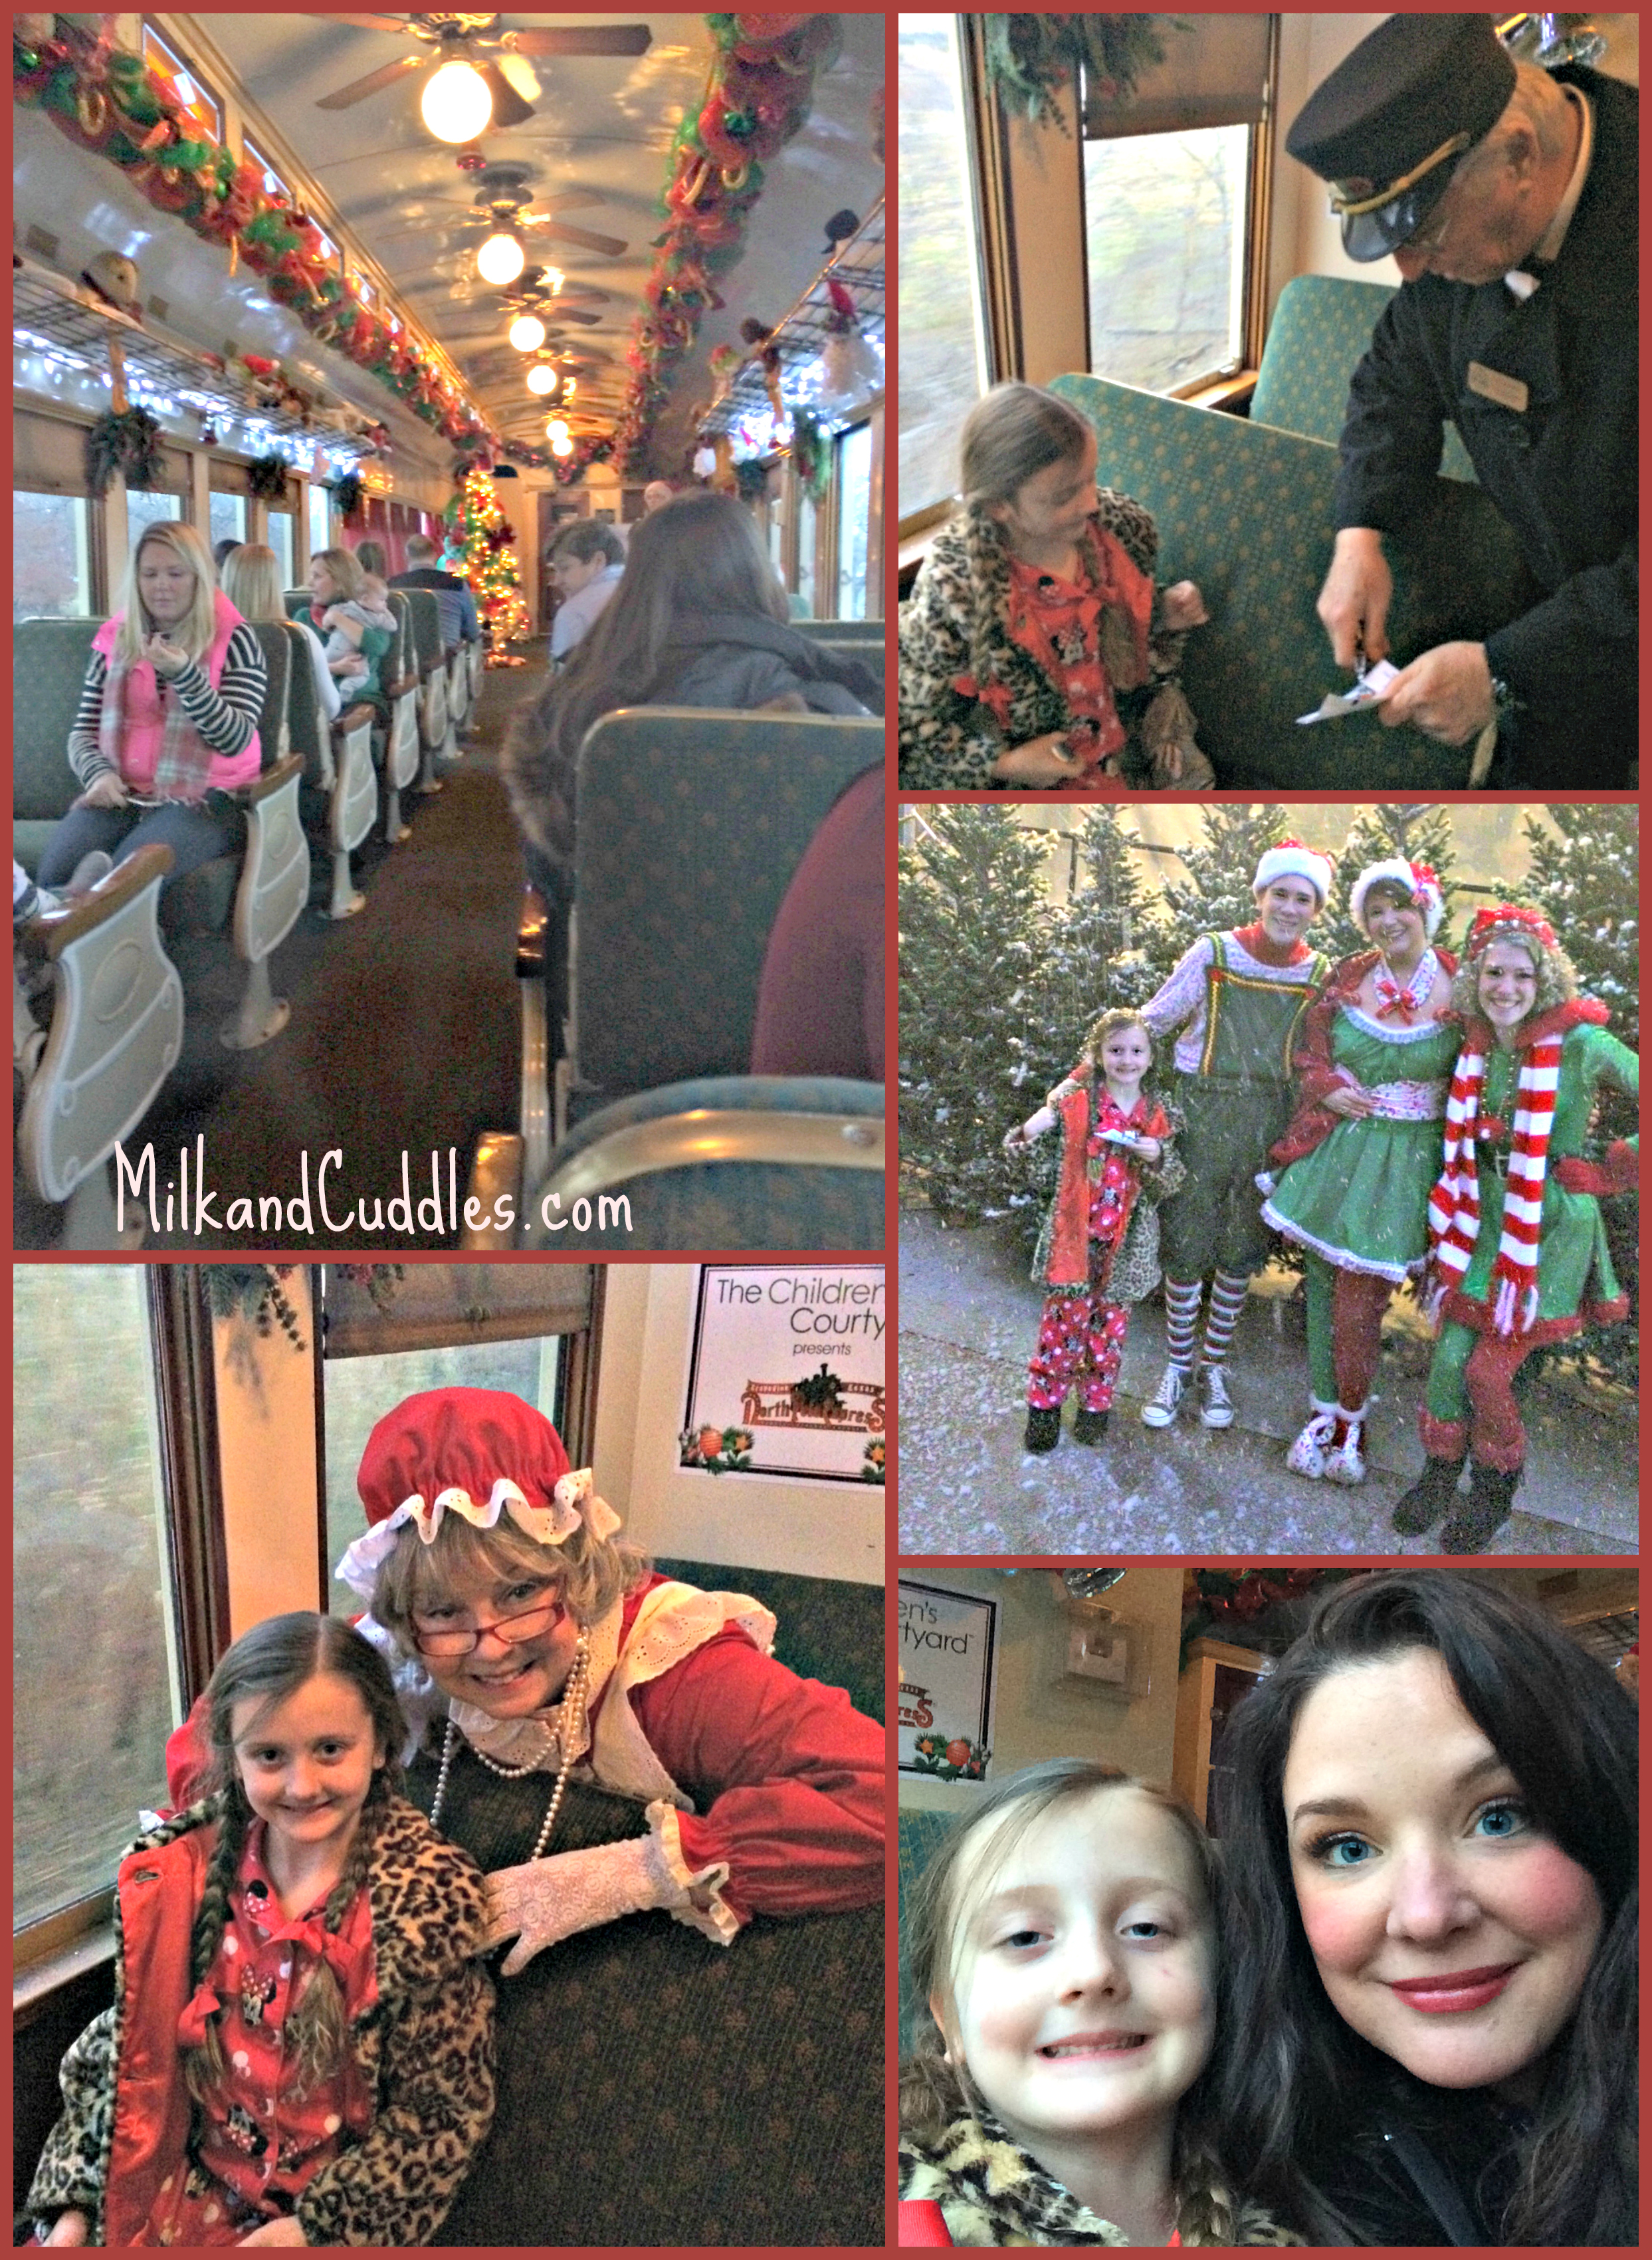 visit grapevine - christmas capital of texas! - everyday best